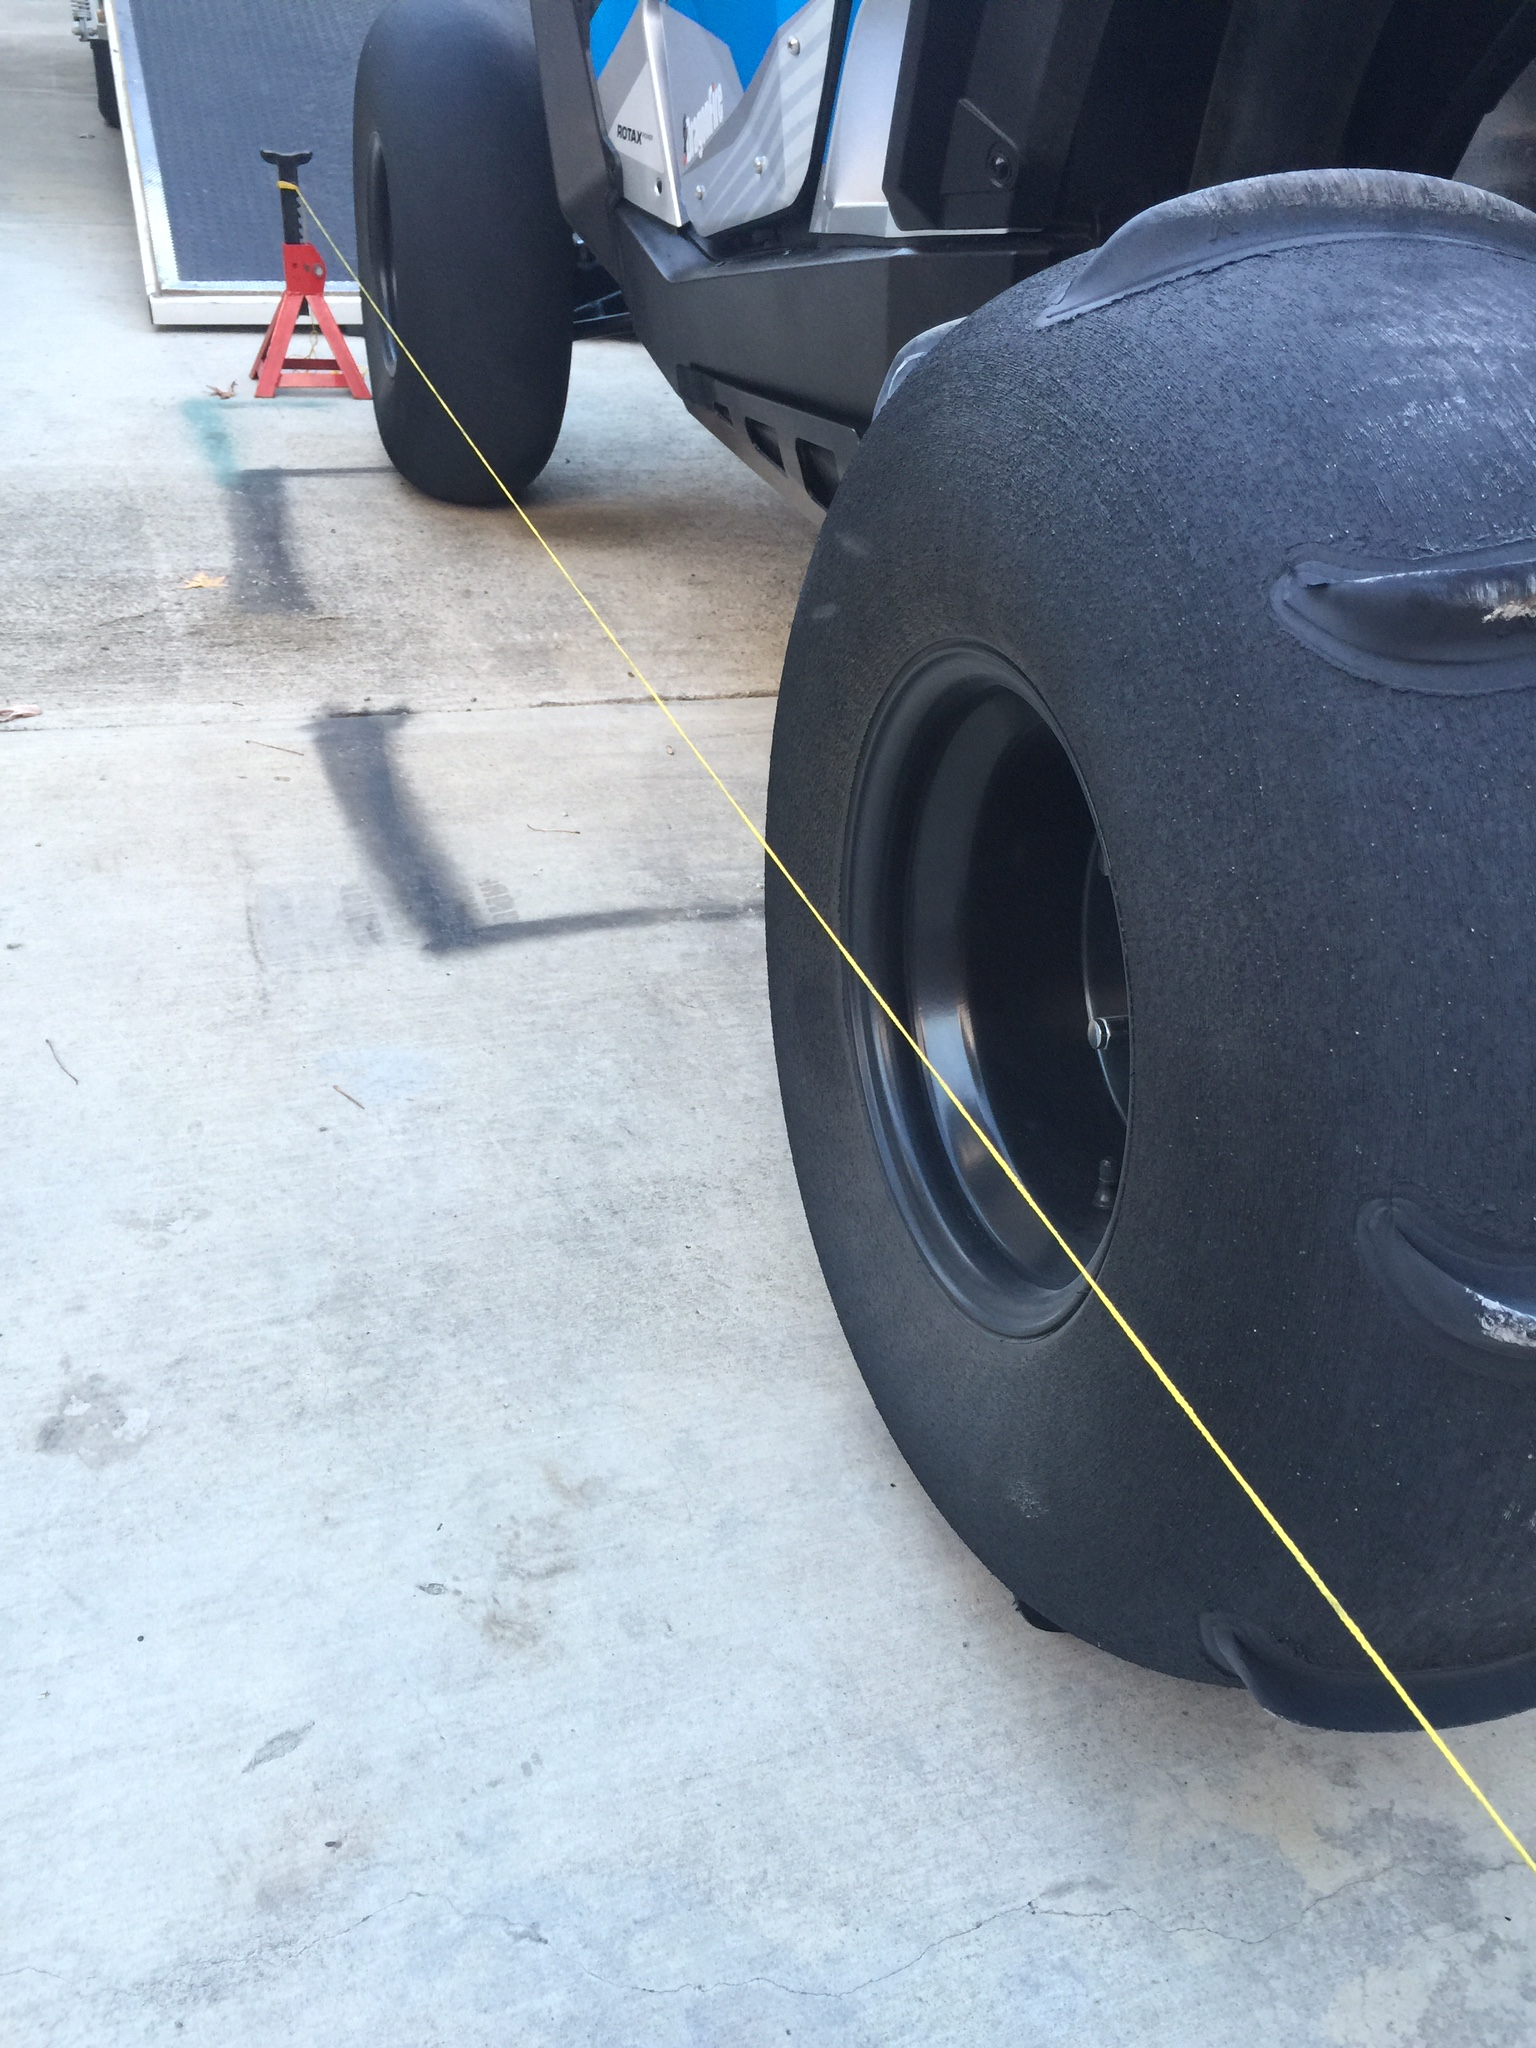 diy wheel alignment